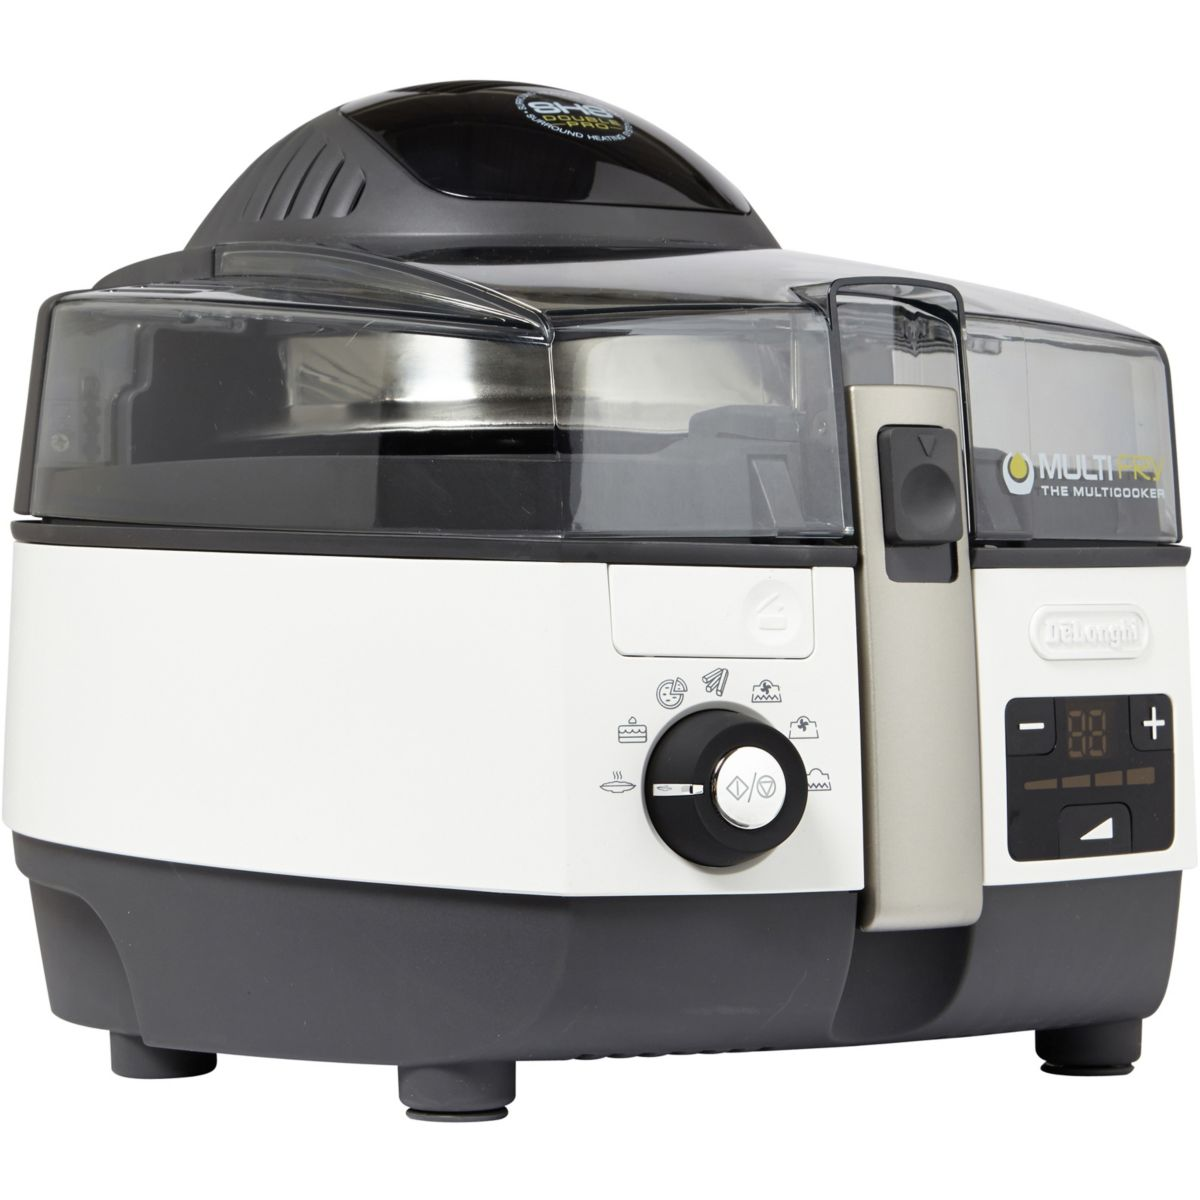 Friteuse DELONGHI FH1394/1 MULTIFRY EXTRA CHEF (photo)